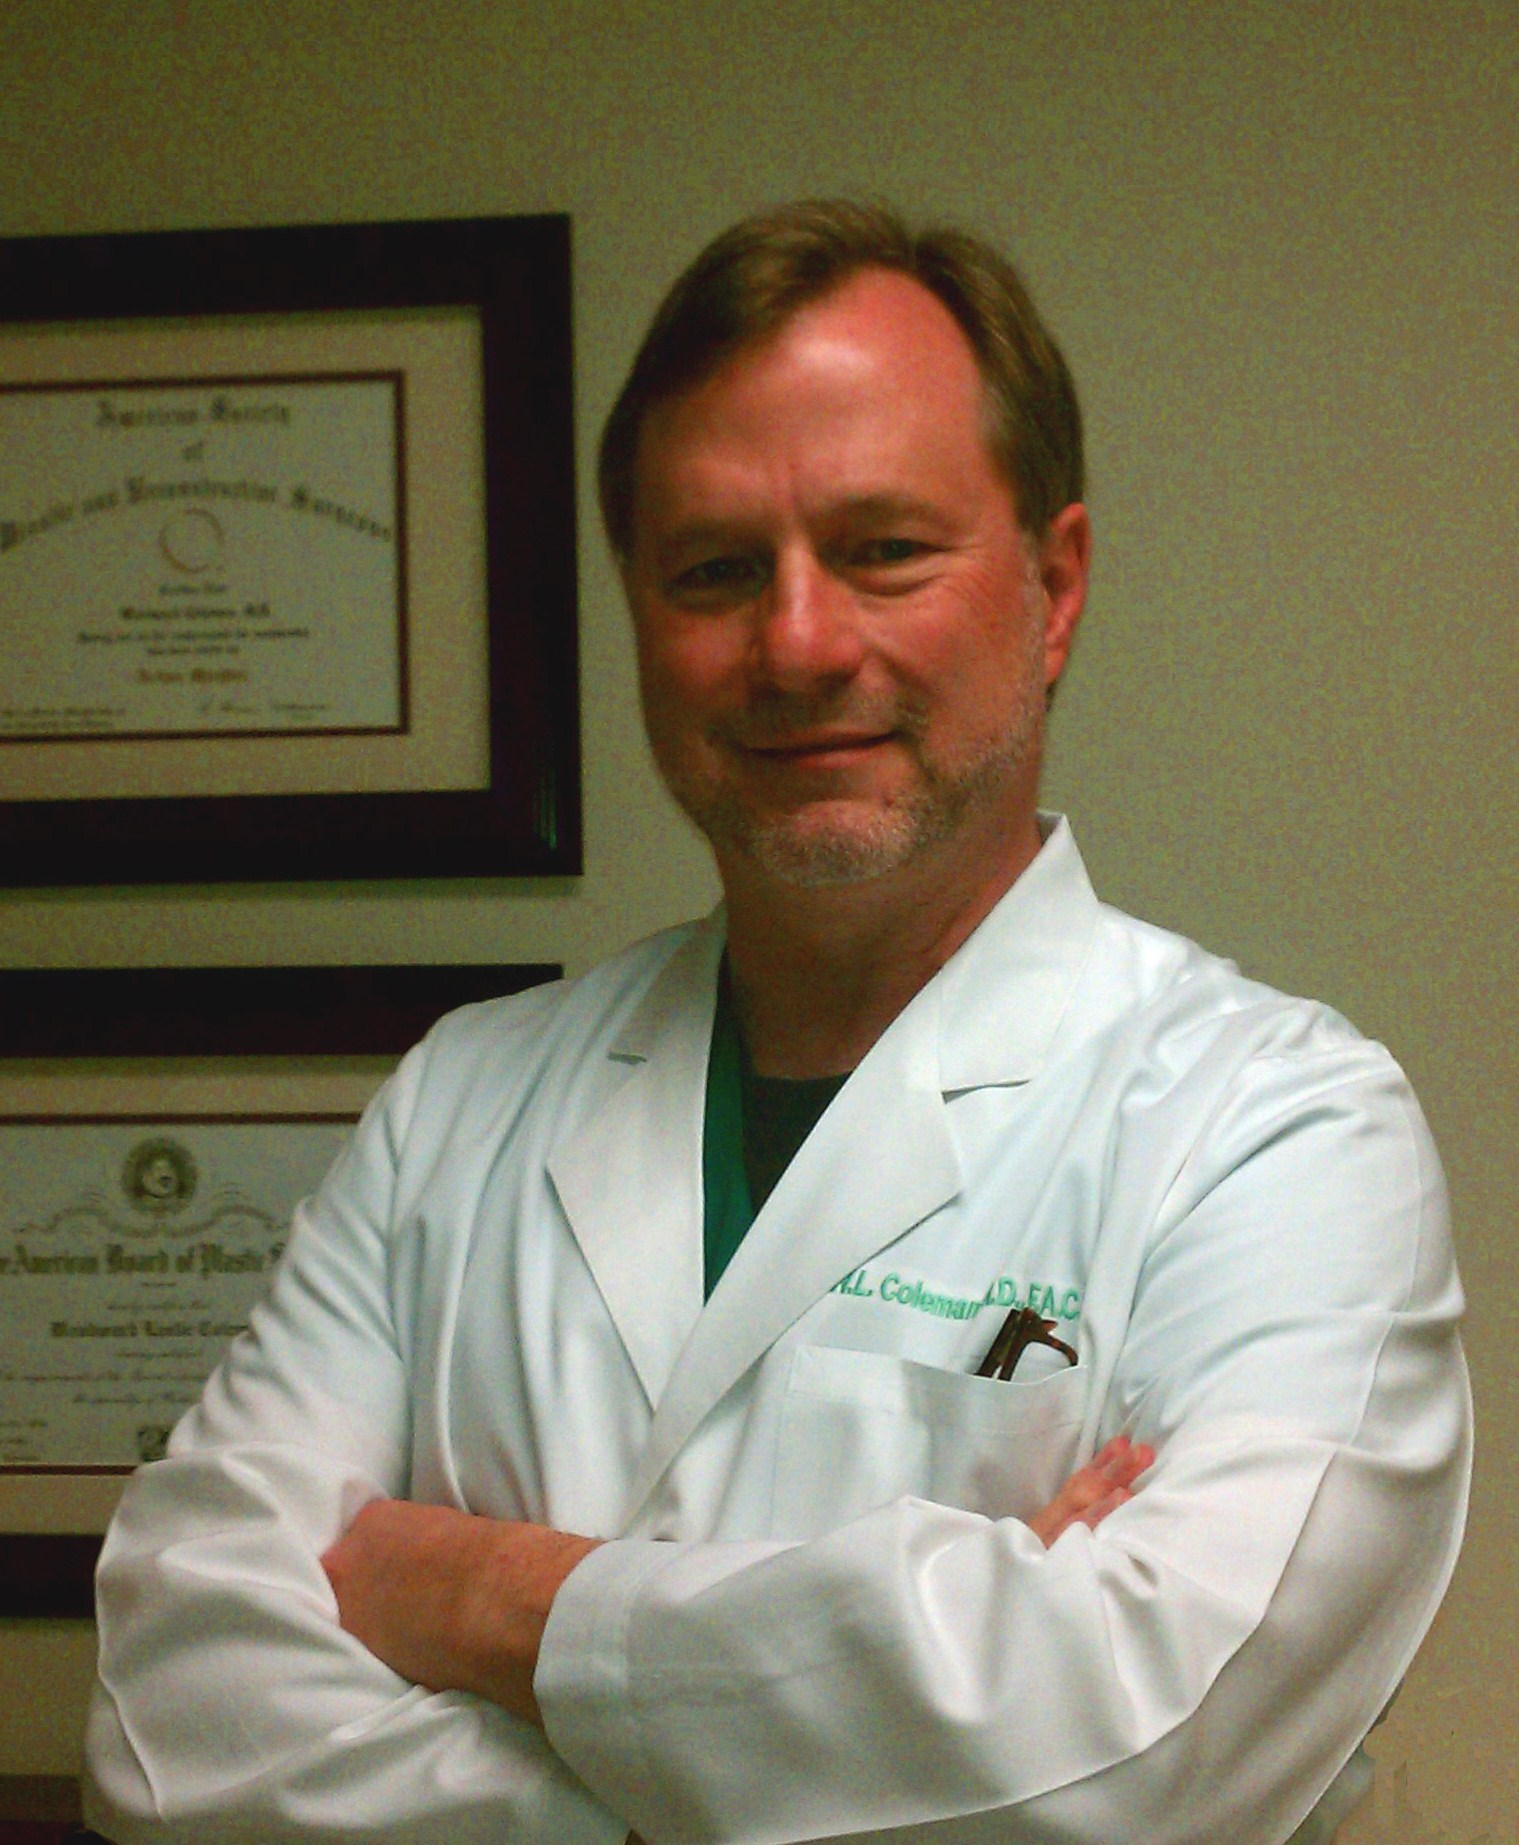 Dr. Woodie Coleman is Austin TX area board-certified plastic surgeon. His cosmetic surgery practice in San Antonio  is within a comfortable driving distance from Austin, Tesas.